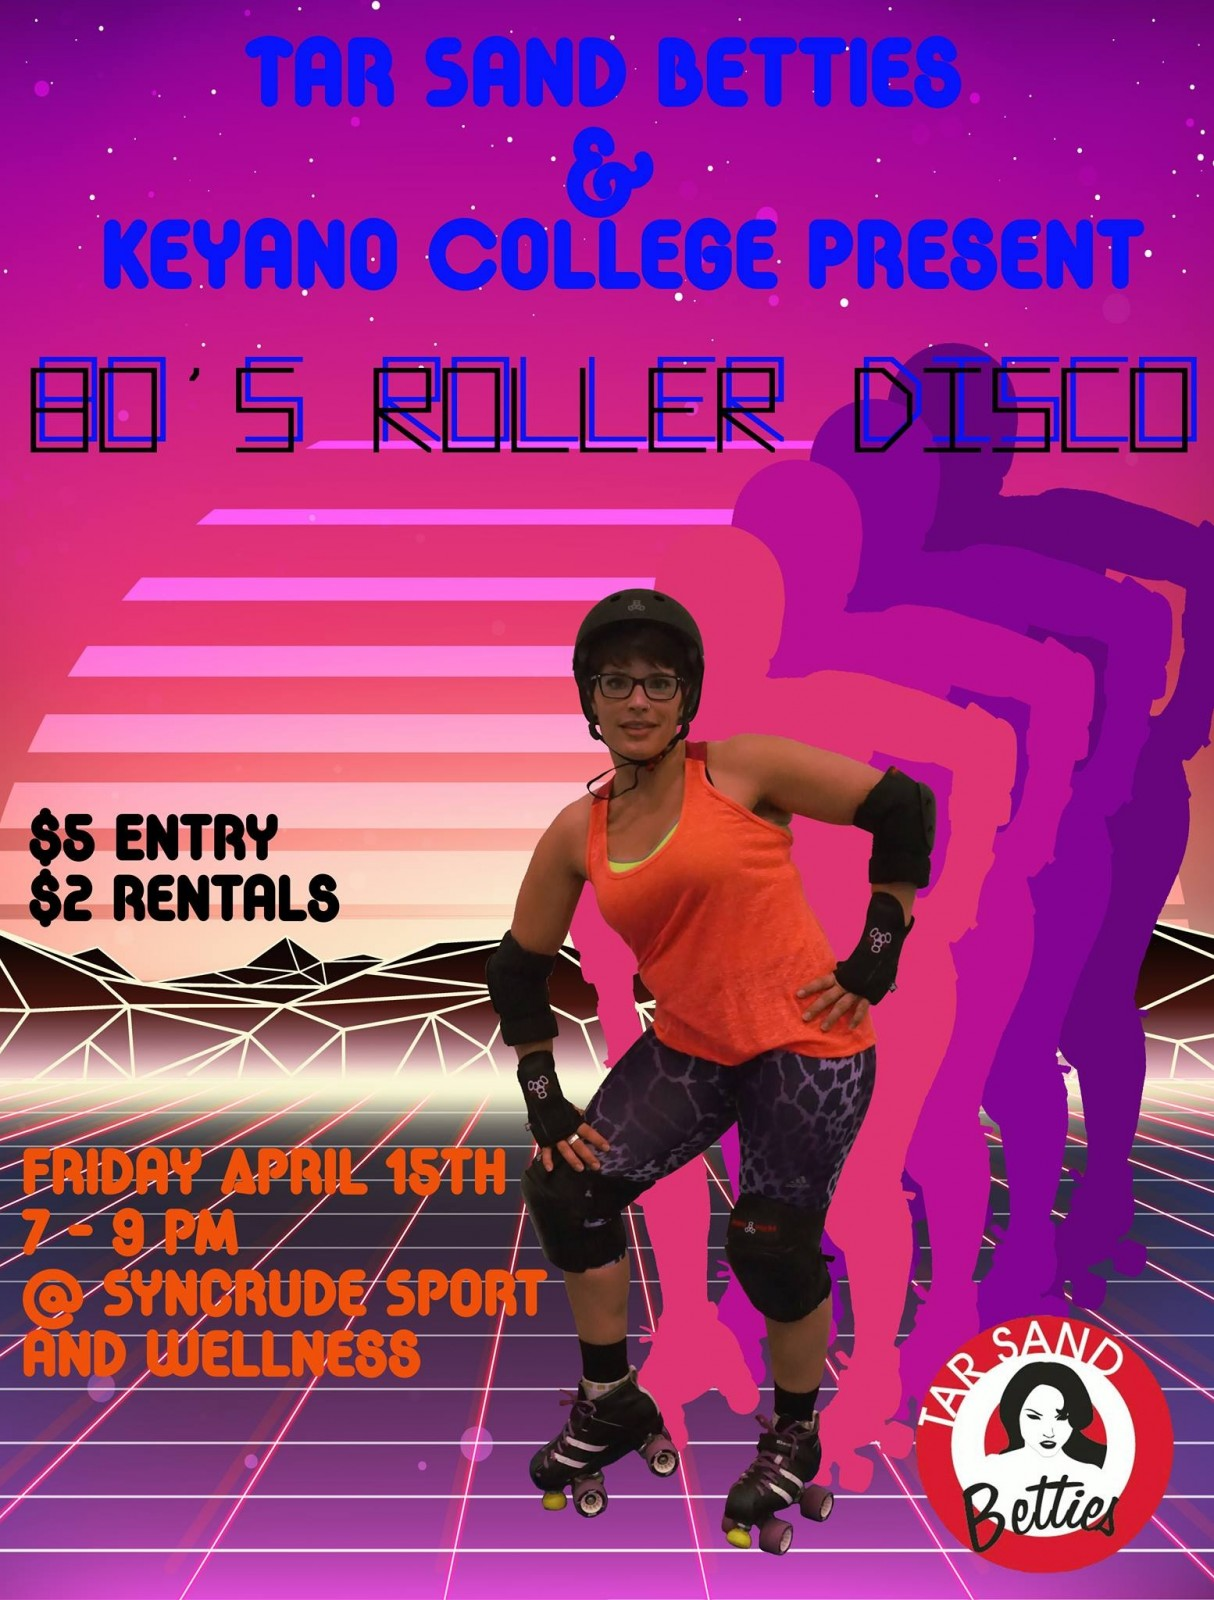 Tar Sand Betties host Roller Disco Friday